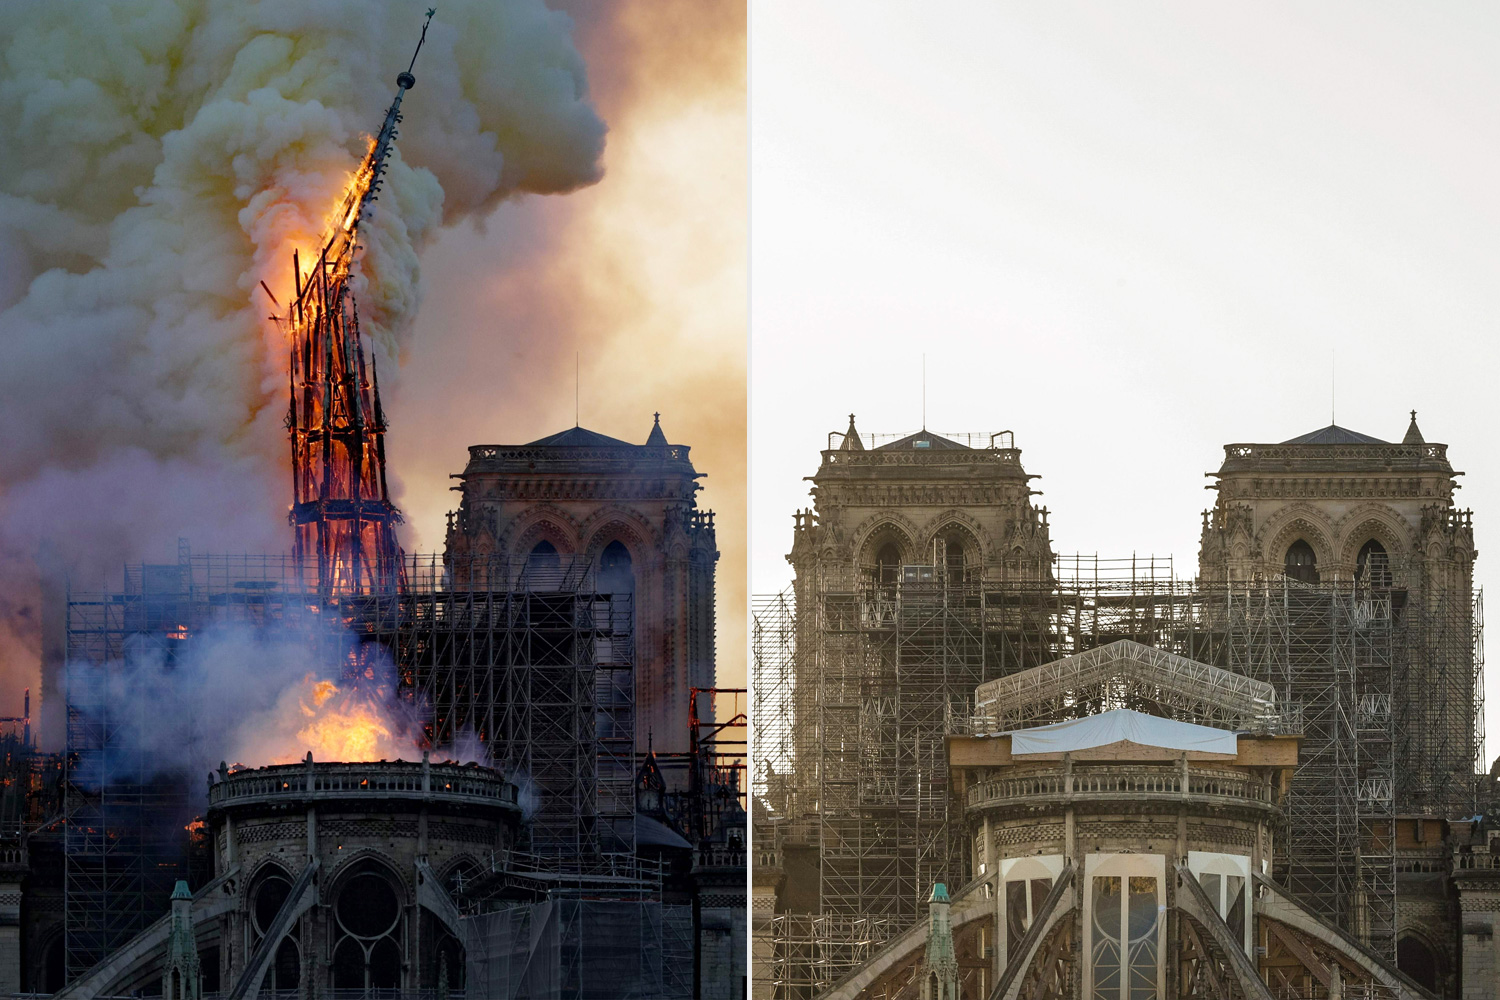 This combination of two pictures shows (top) the spire of the Notre-Dame Cathedral in central Paris collapsing as a major fire broke out at the landmark on April 15, 2019, and (down) the same view of the cathedral one year after, on April 13, 2020, during a lockdown in France aimed at curbing the spread of the COVID-19 pandemic, caused by the novel coronavirus